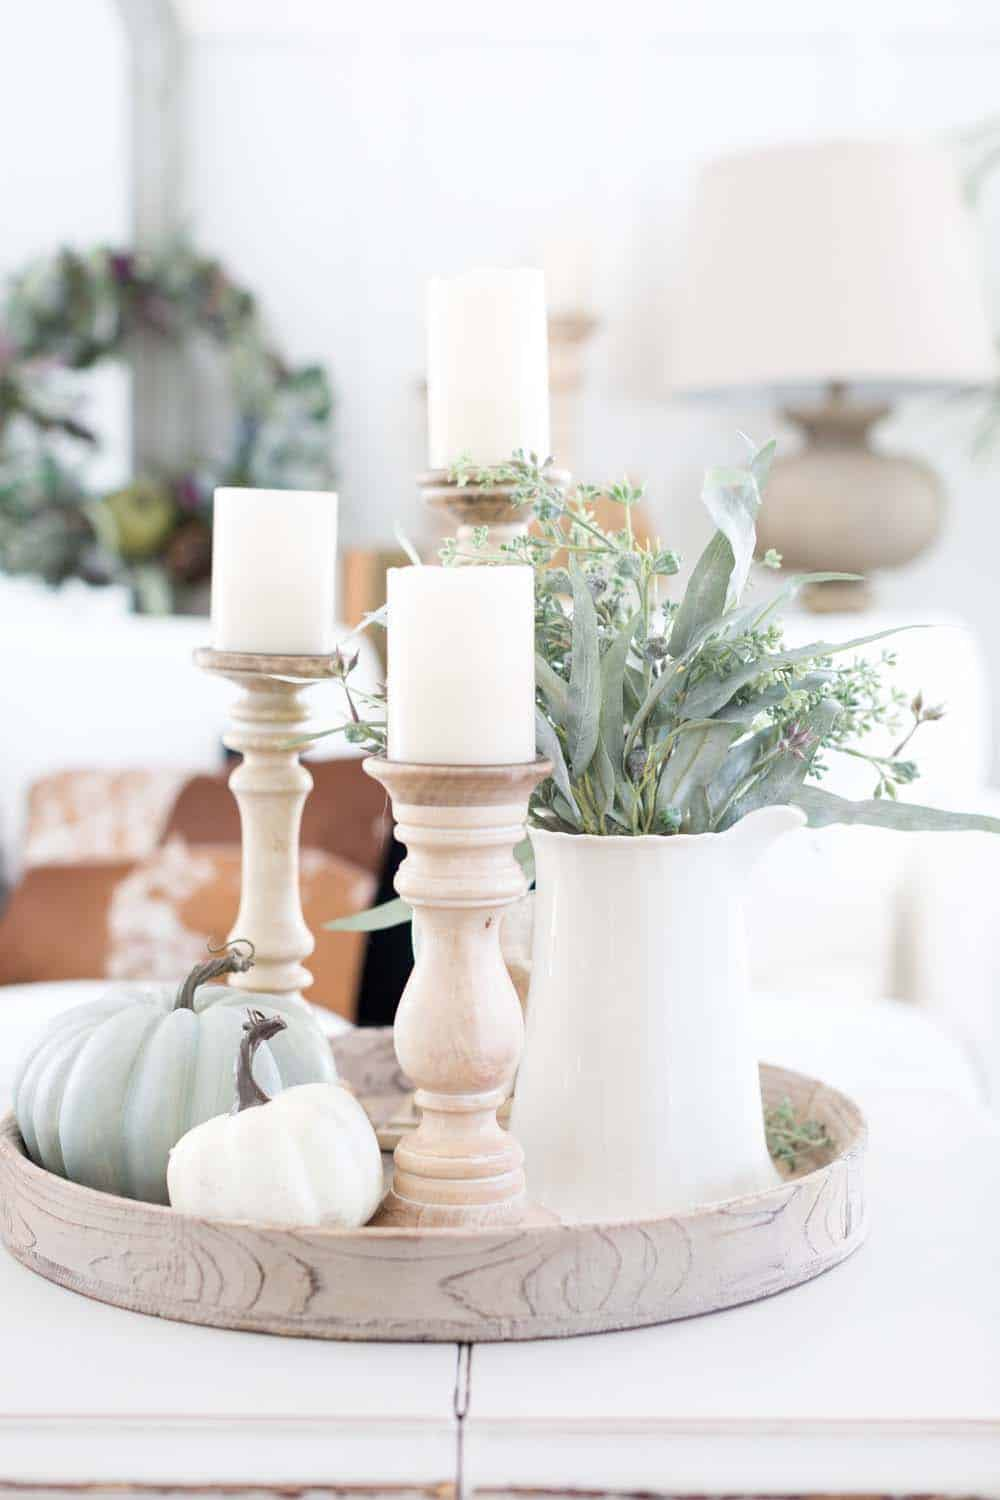 Inspiring Fall Decor Ideas-13-1 Kindesign